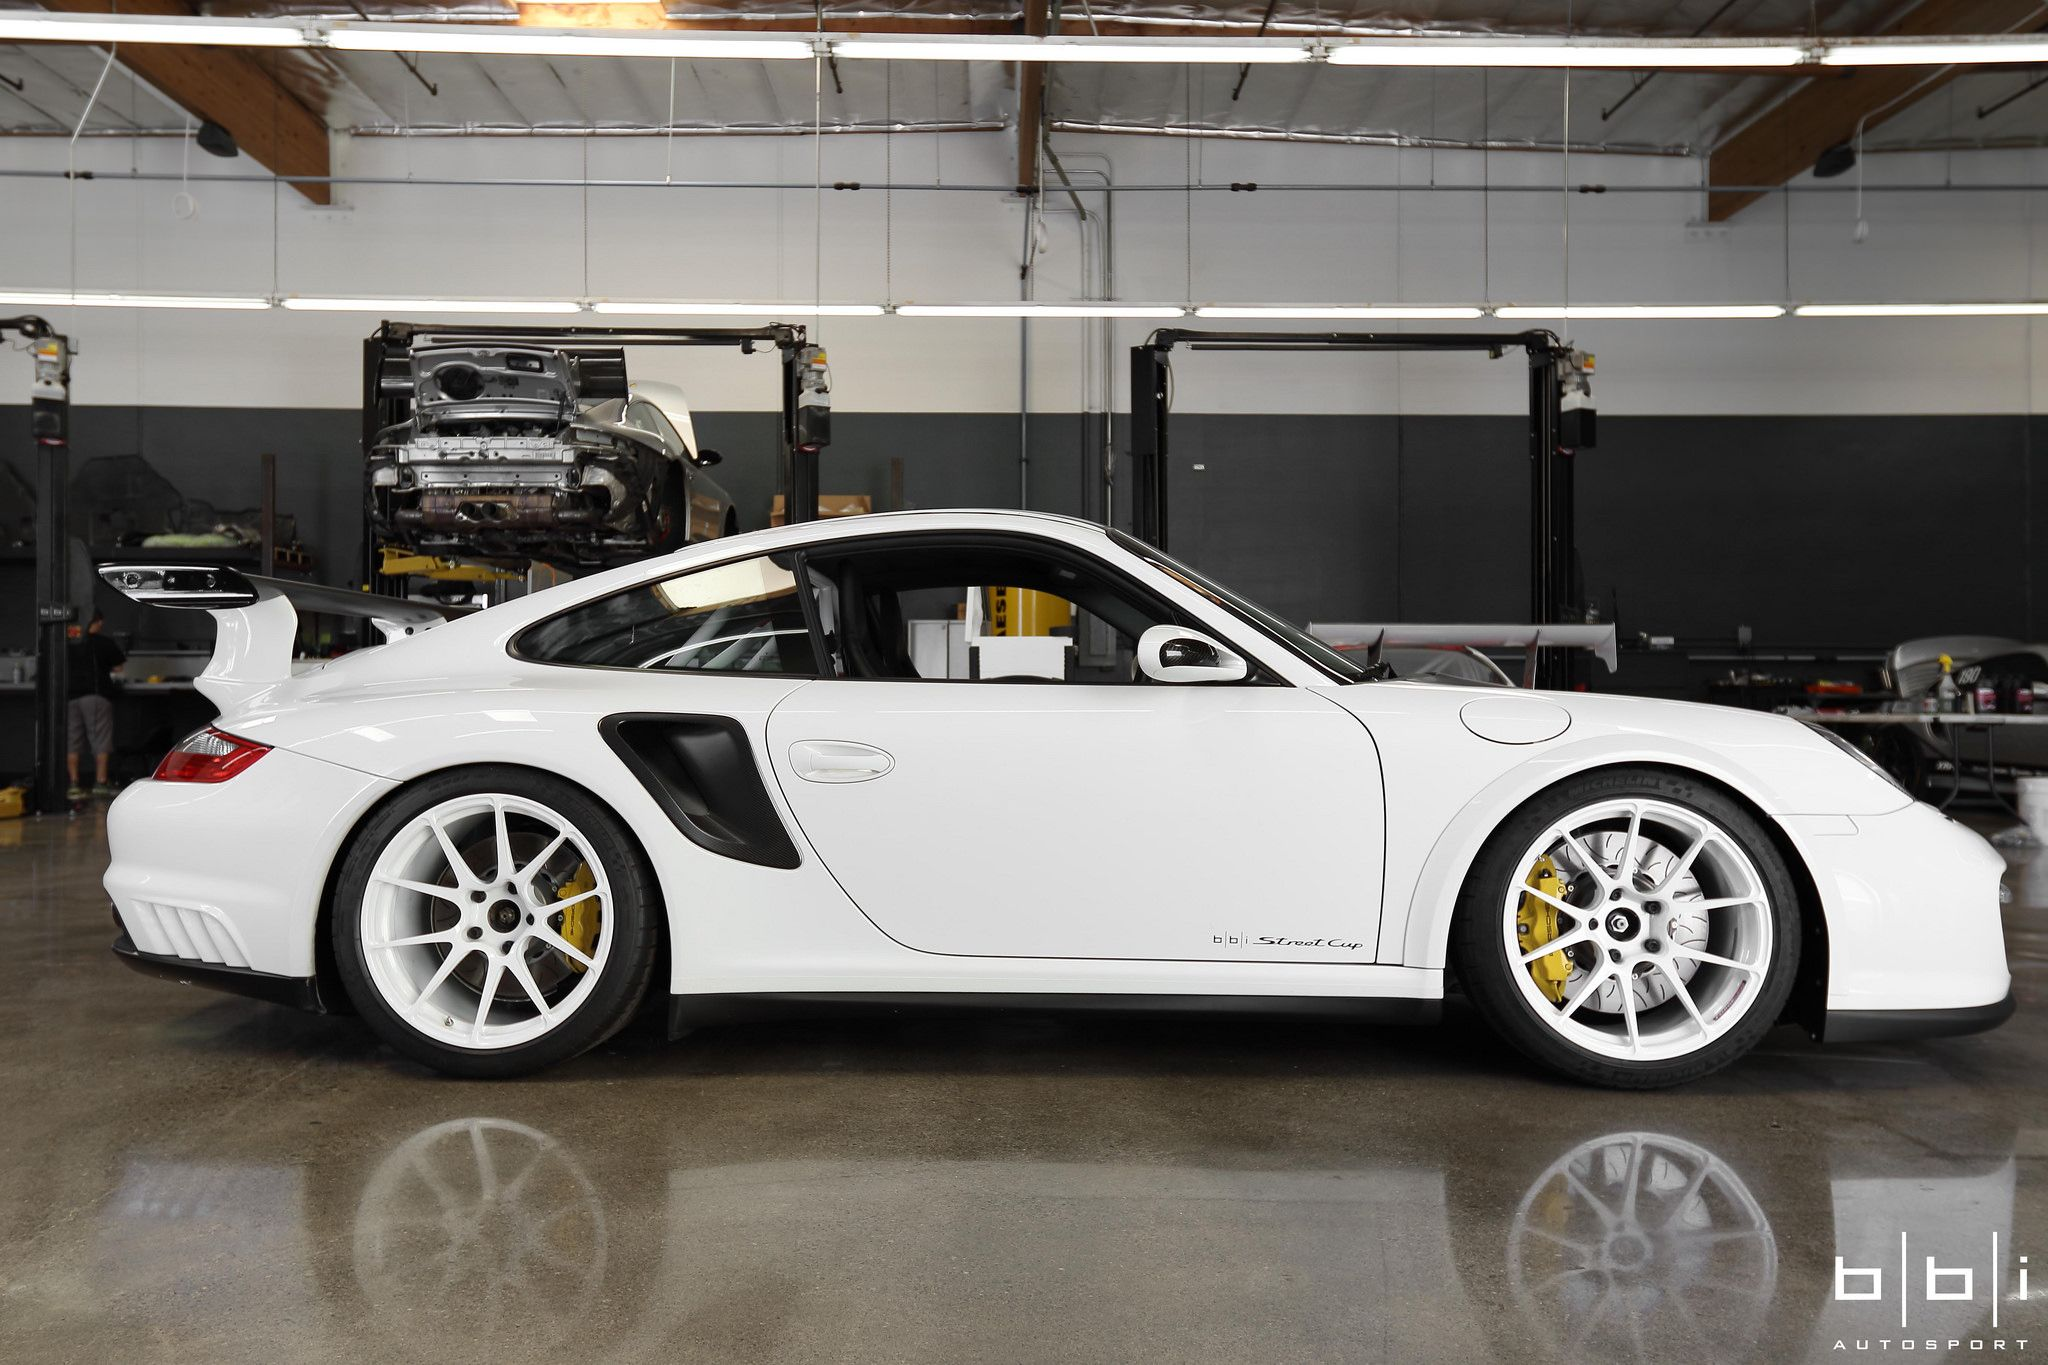 "What kind of visceral ultimate sportscar can you build, when budget is no obstacle? Maybe something like this incredible ""Project Swan"" Porsche 911 Turbo by our friends at BBi Autosport. This wild machine started as a 997.1 Turbo, but received a full rear wheel drive GT2 conversion. It's equipped with a 600+rwhp 3.8L and 19x10/19x12 Forgeline one piece forged monoblock GA1R Open Lug wheels finished in Super Wet White! See more at: http://www.forgeline.com/customer_gallery_view.php?cvk=1829"